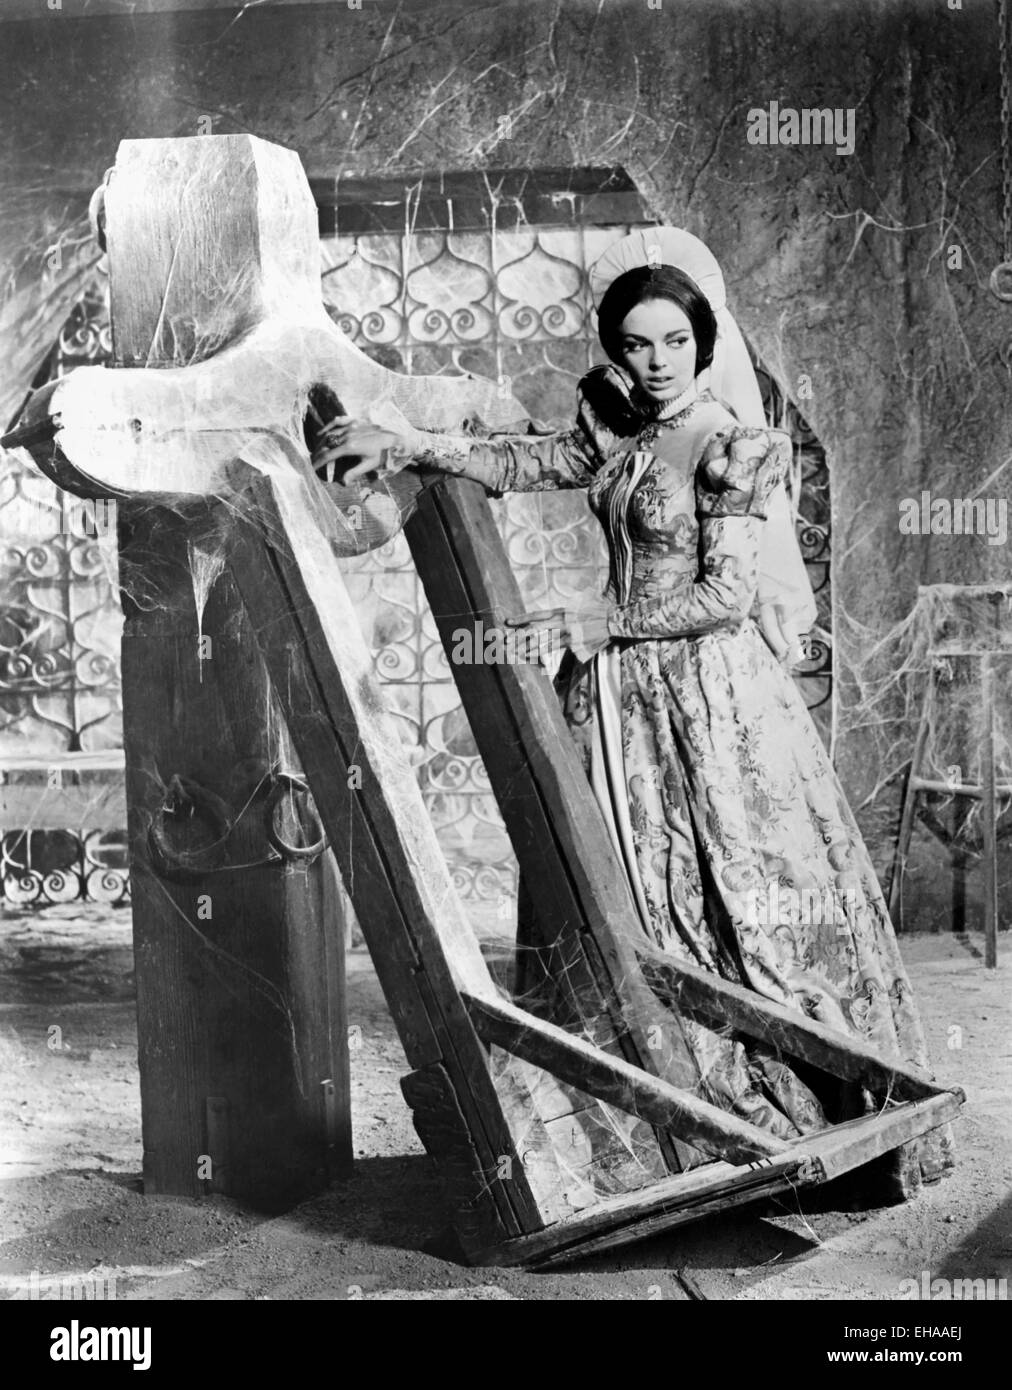 Barbara Steele, on-set of the Film 'The Pit and the Pendulum', 1961 - Stock Image